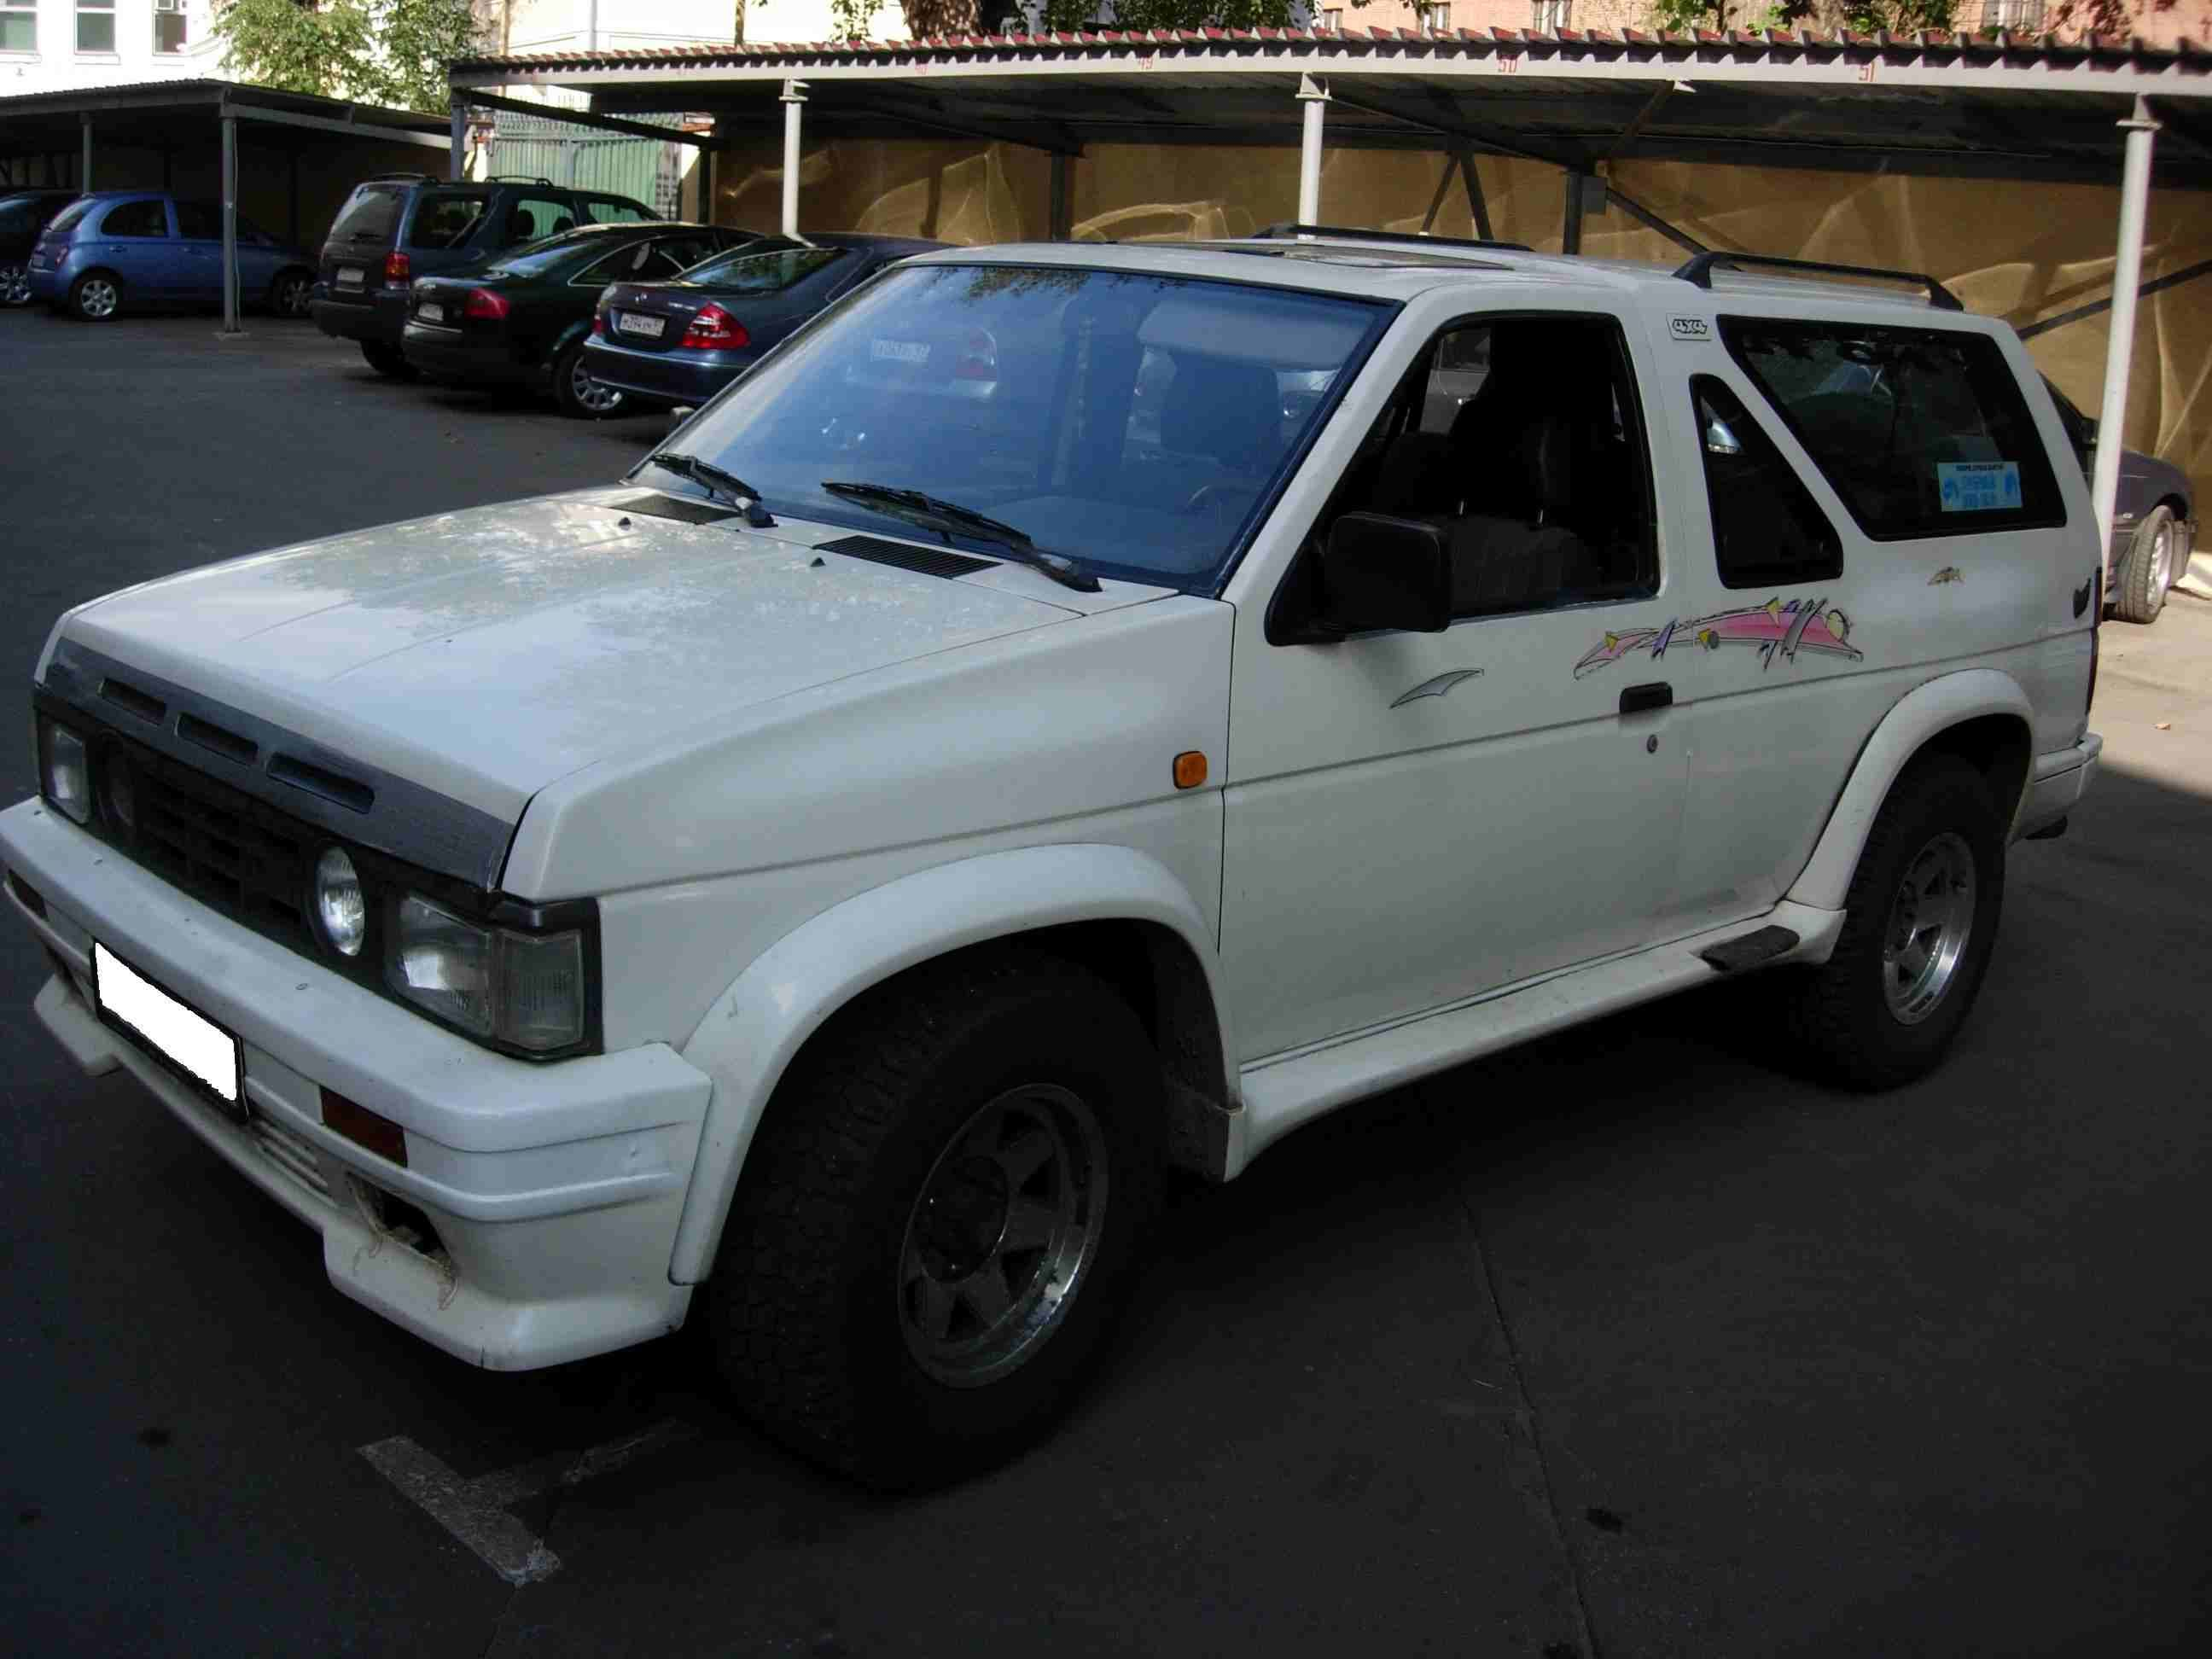 1988 nissan terrano for sale 2 4 gasoline manual for sale rh cars directory net www Motor 93 Nissan VG30E Diagramas www Motor 93 Nissan VG30E Diagramas